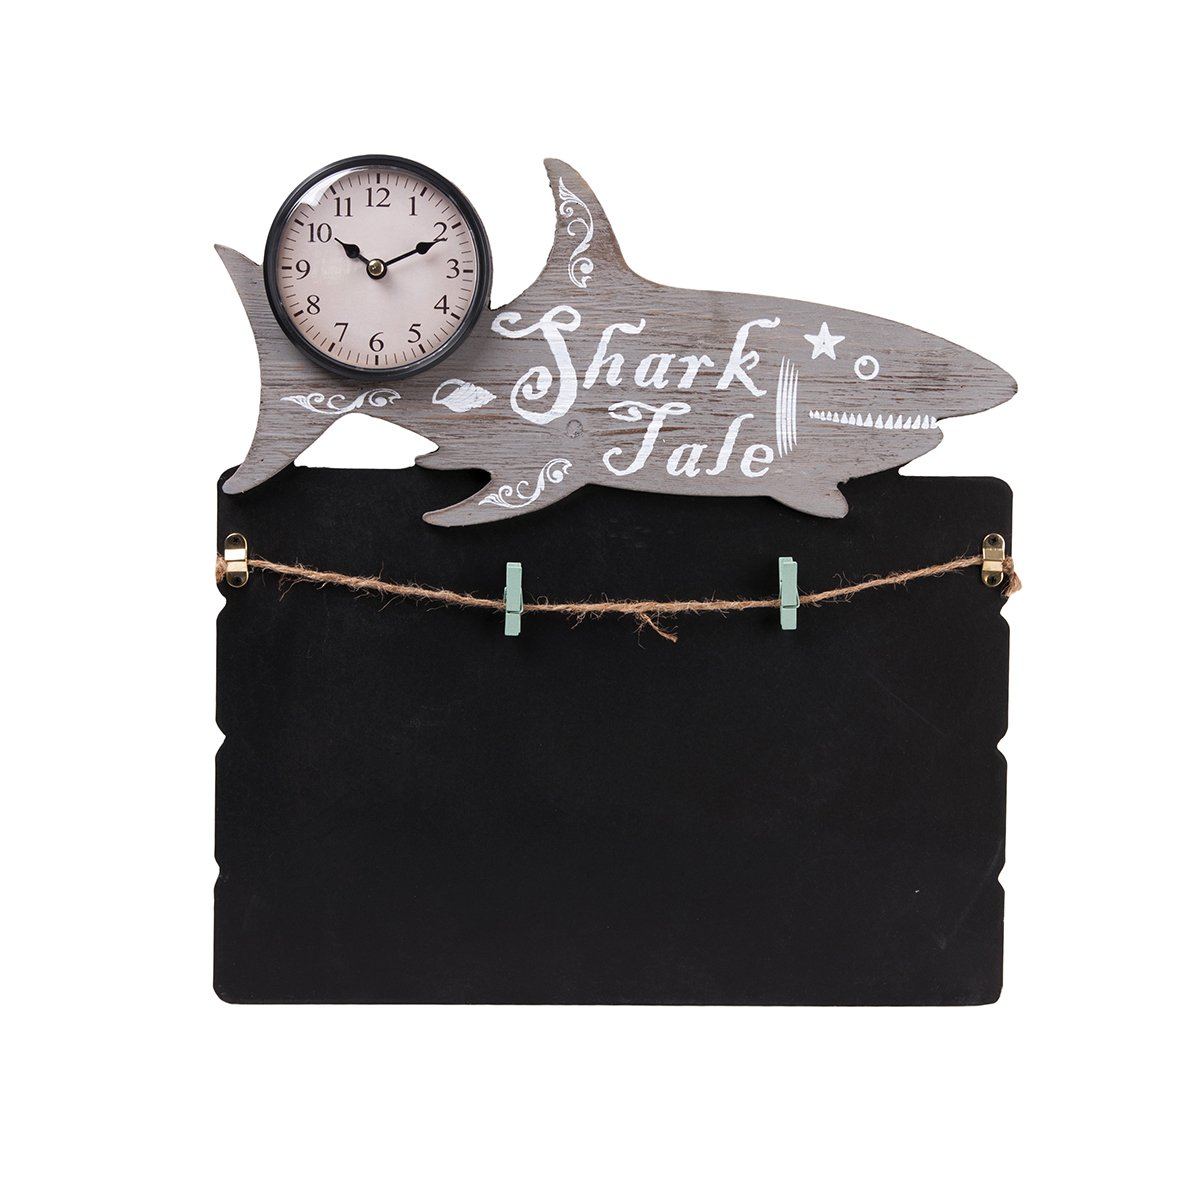 TORCH Decorative Small Lovely Animal Figure Wooden Chalkboard Messageboard with Mini Clock for Hanging and Organizing Prints, Instax, Photos, Artwork (SHA)